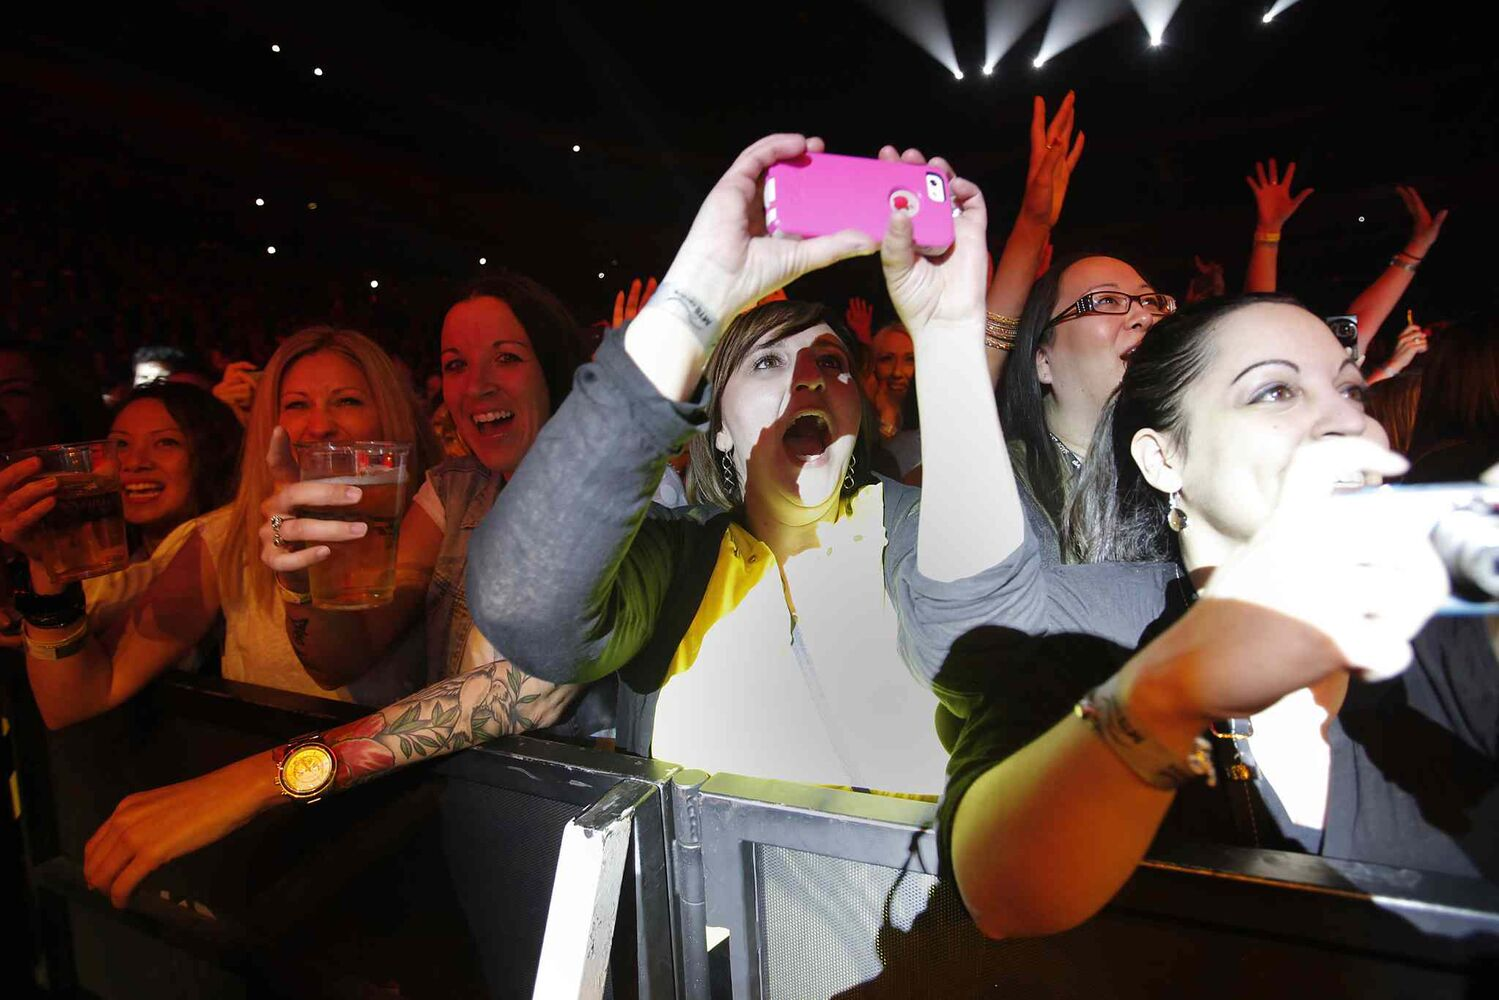 A fan takes a picture while the Backstreet Boys perform at the MTS Centre Sunday night. (John Woods / Winnipeg Free Press)